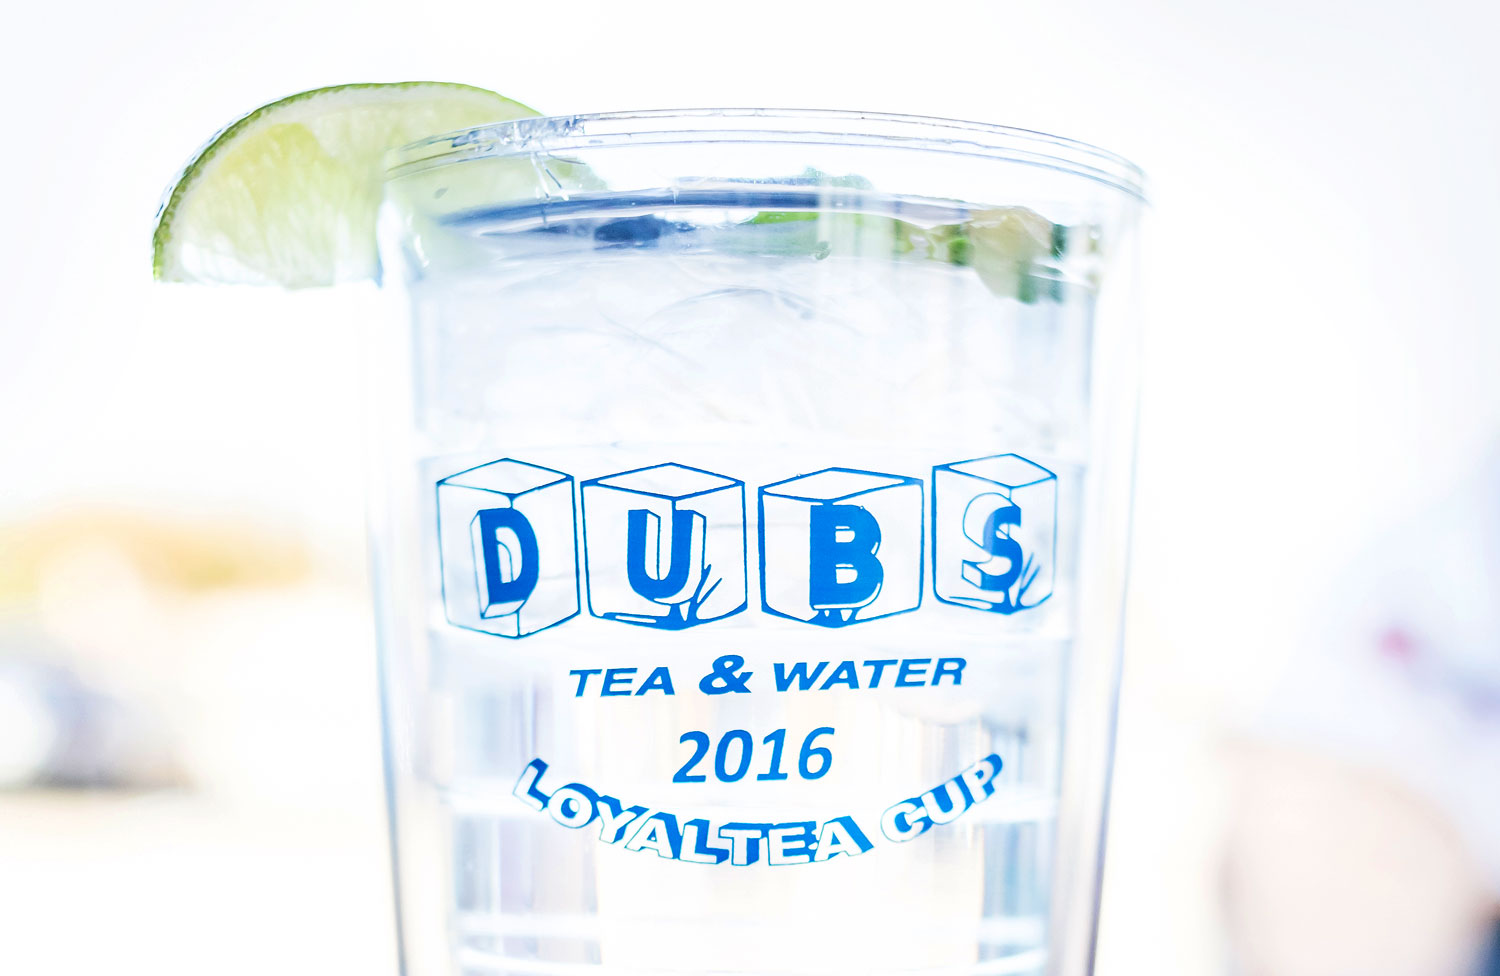 DUBS-TEA-WATER-RESTAURANT-PLANO-MAGAZINE-LOYALTEA-CUP